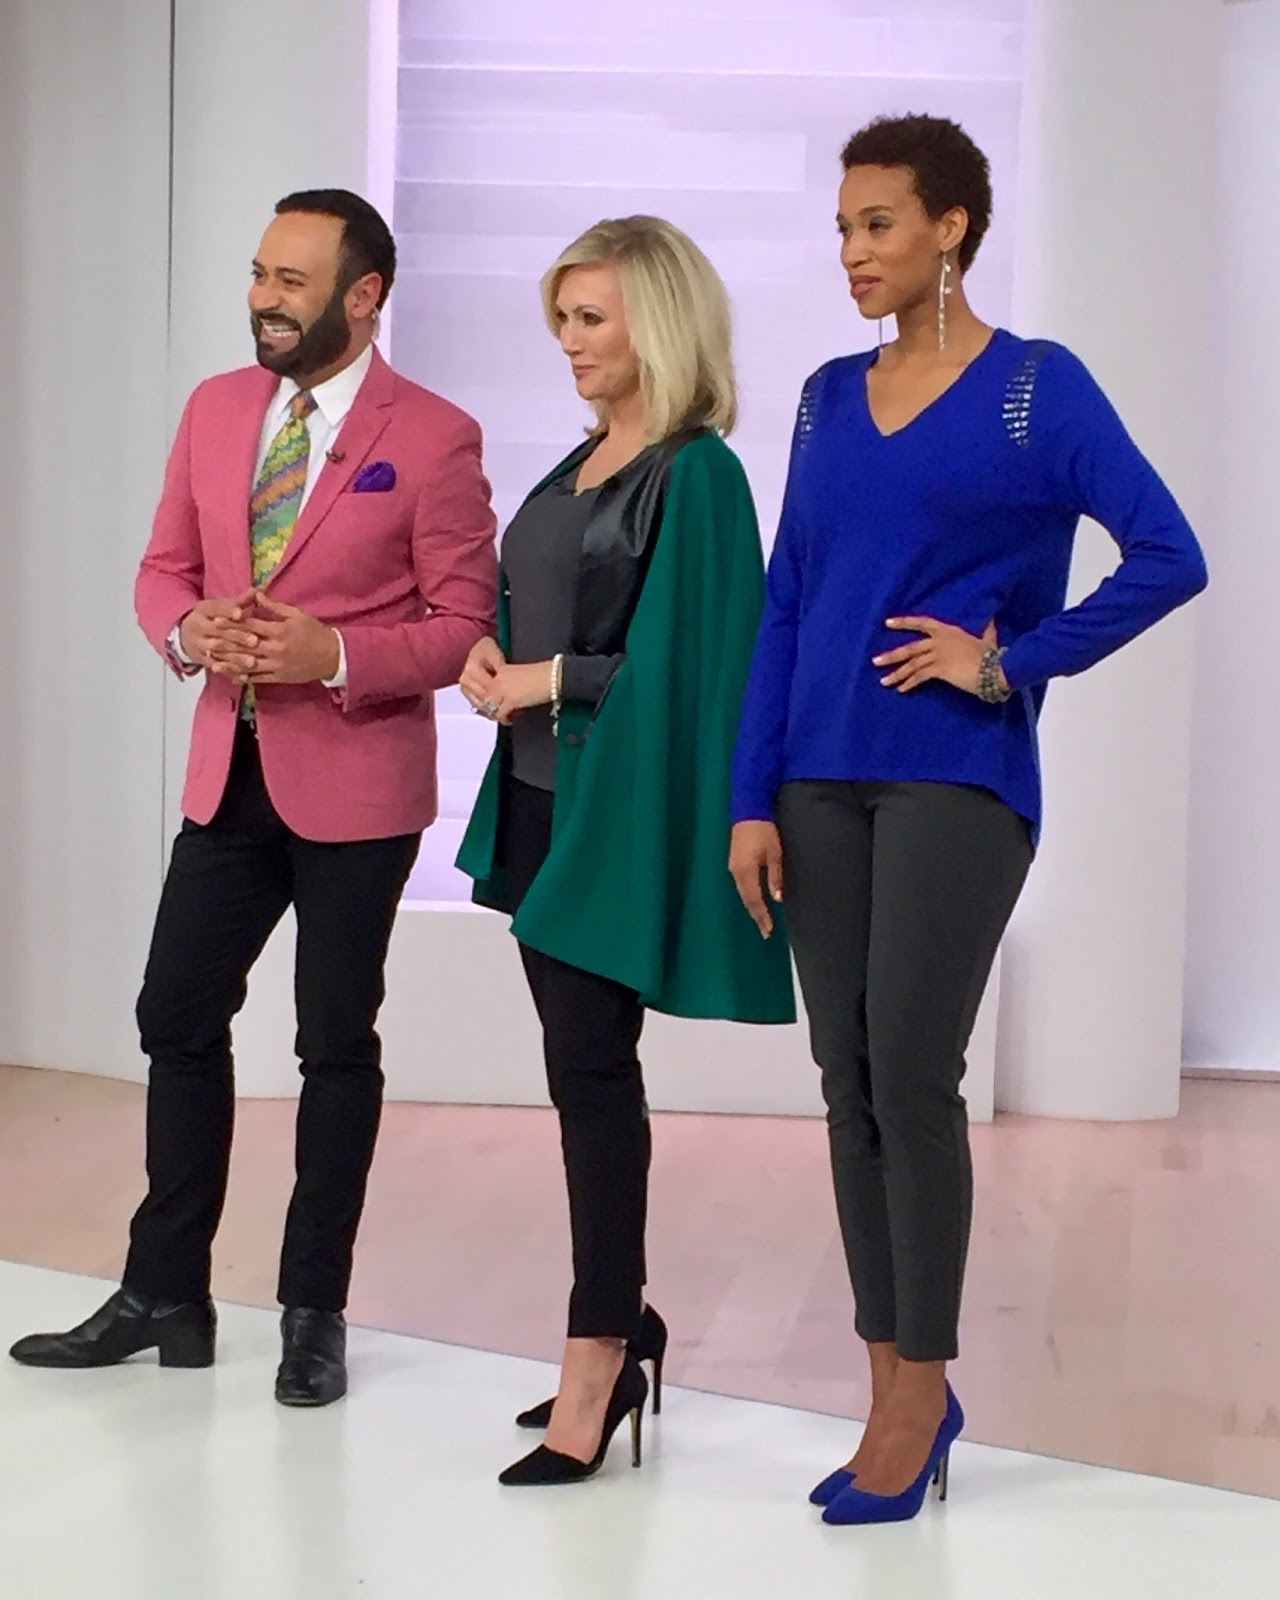 Evine Live Shopping Network - January 2016 show on evine live tv shopping network